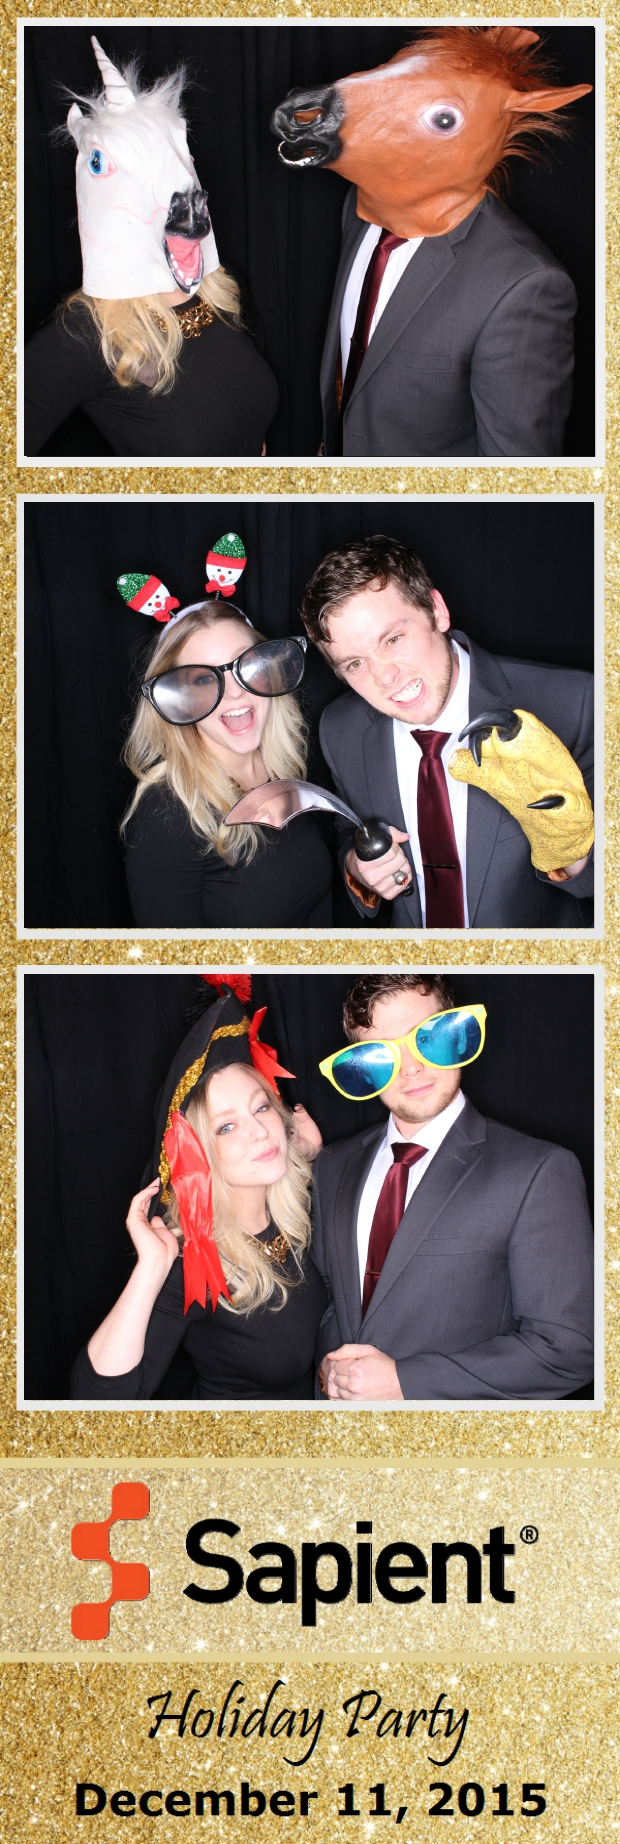 Guest House Events Photo Booth Sapient Holiday Party (2).jpg